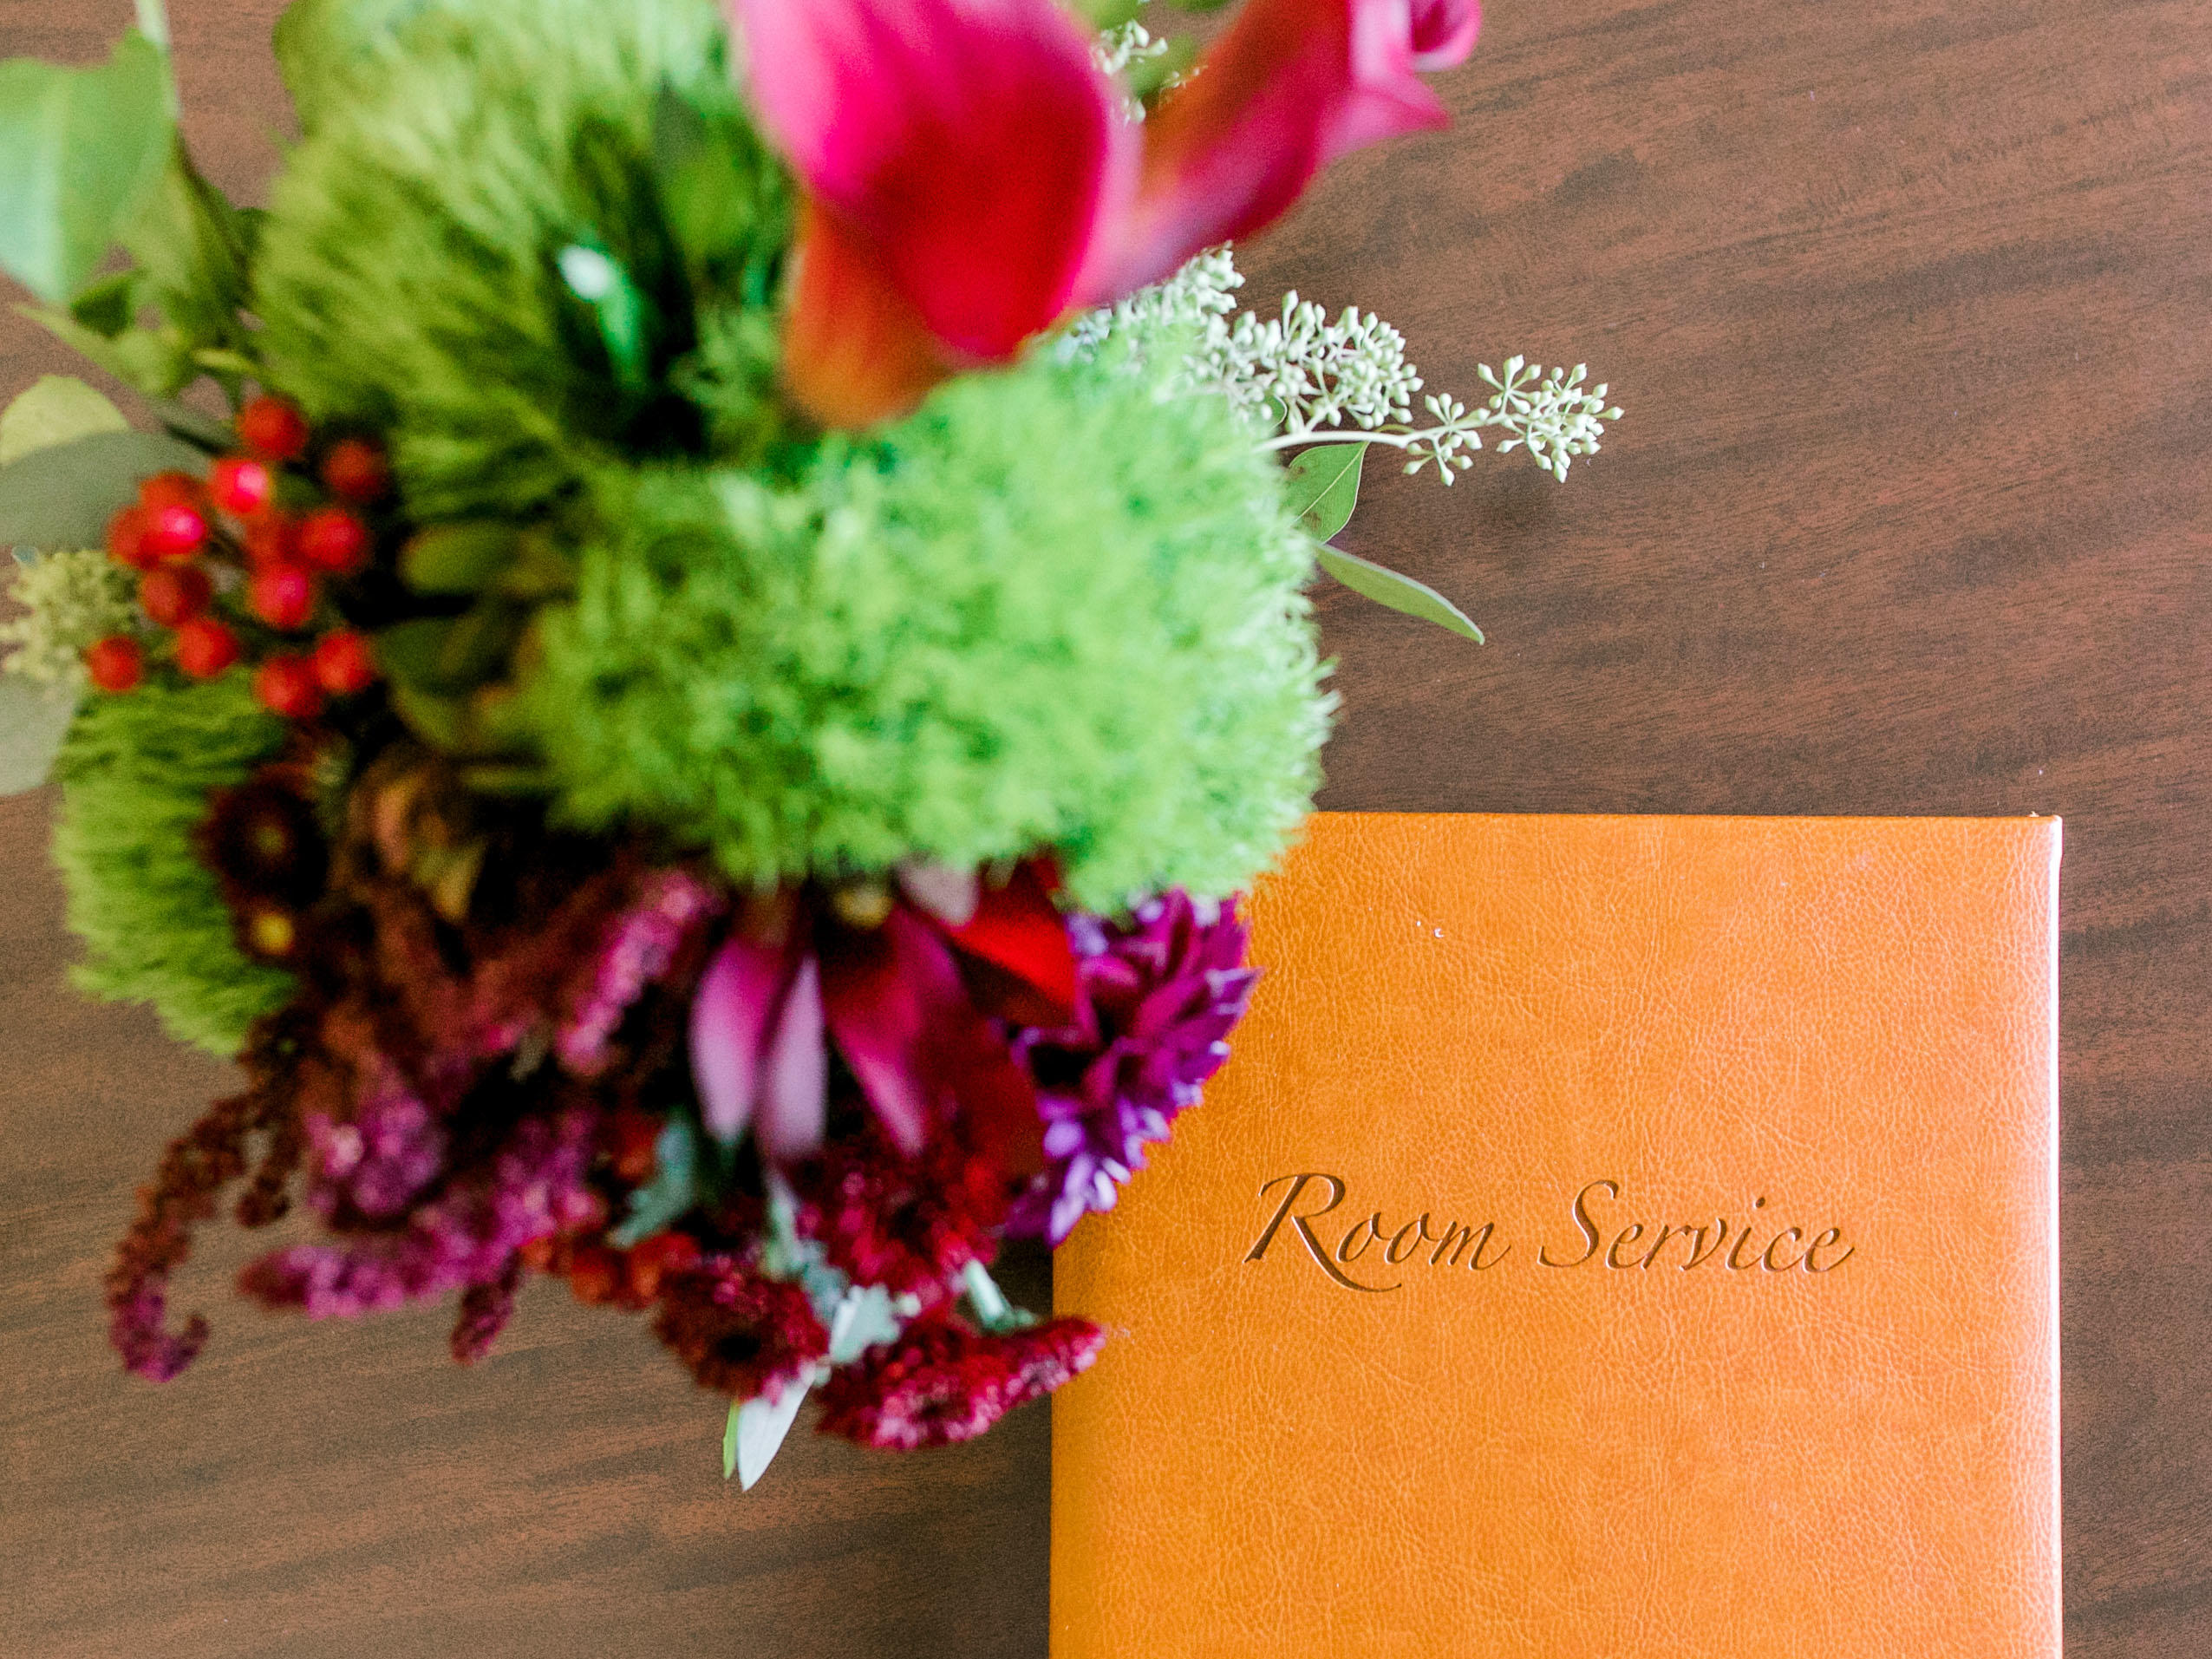 Room Service menu and flowers on table